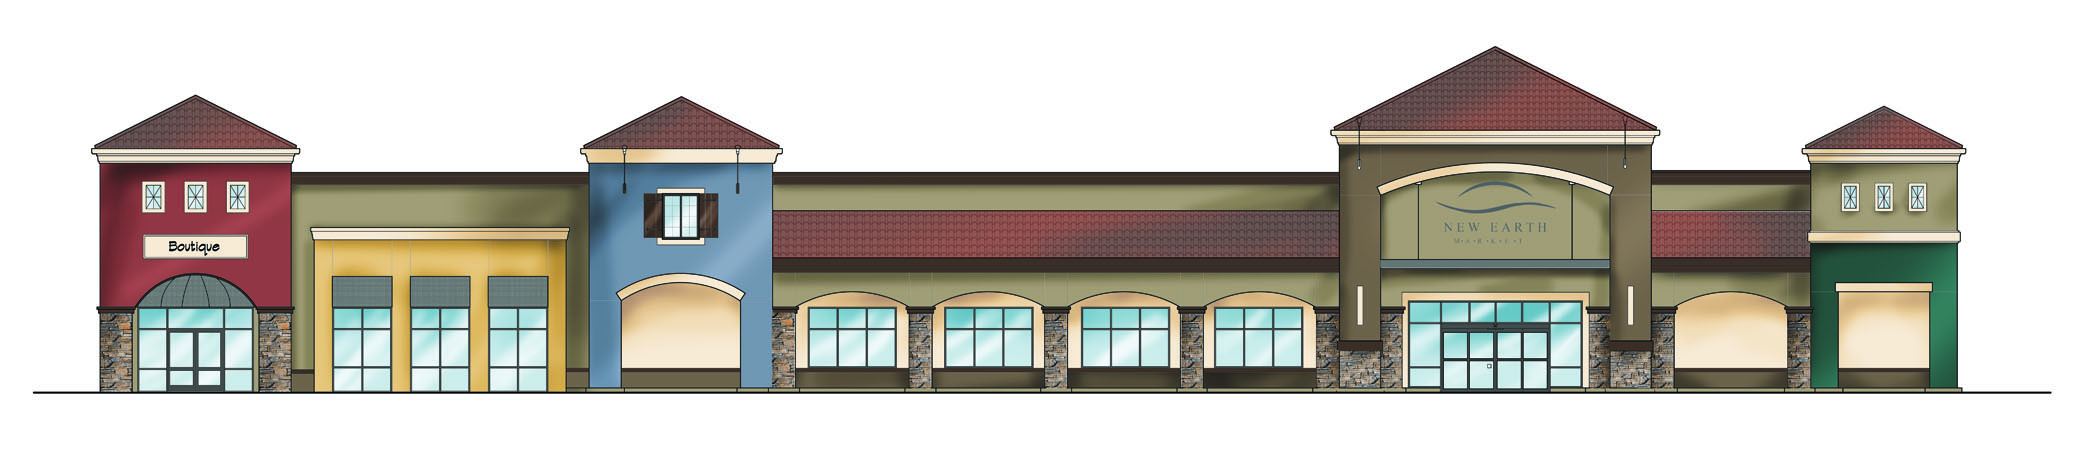 New Earth Market: west elevation